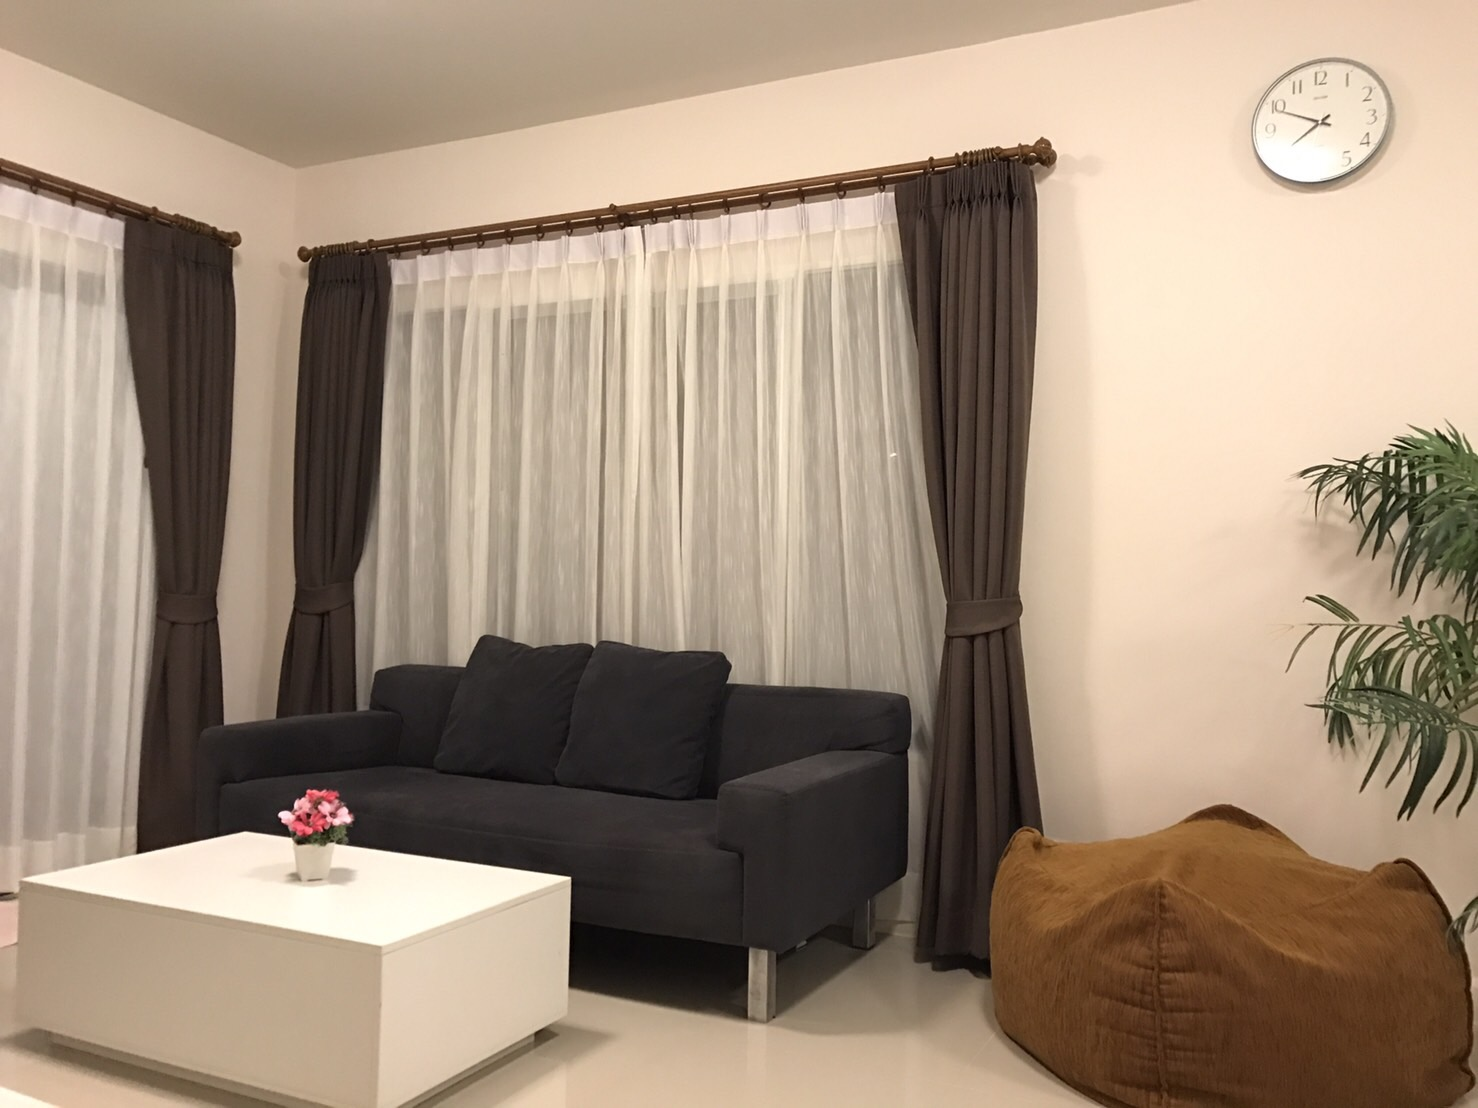 A family 3 bedroom house shared pool in Kok-Keaw